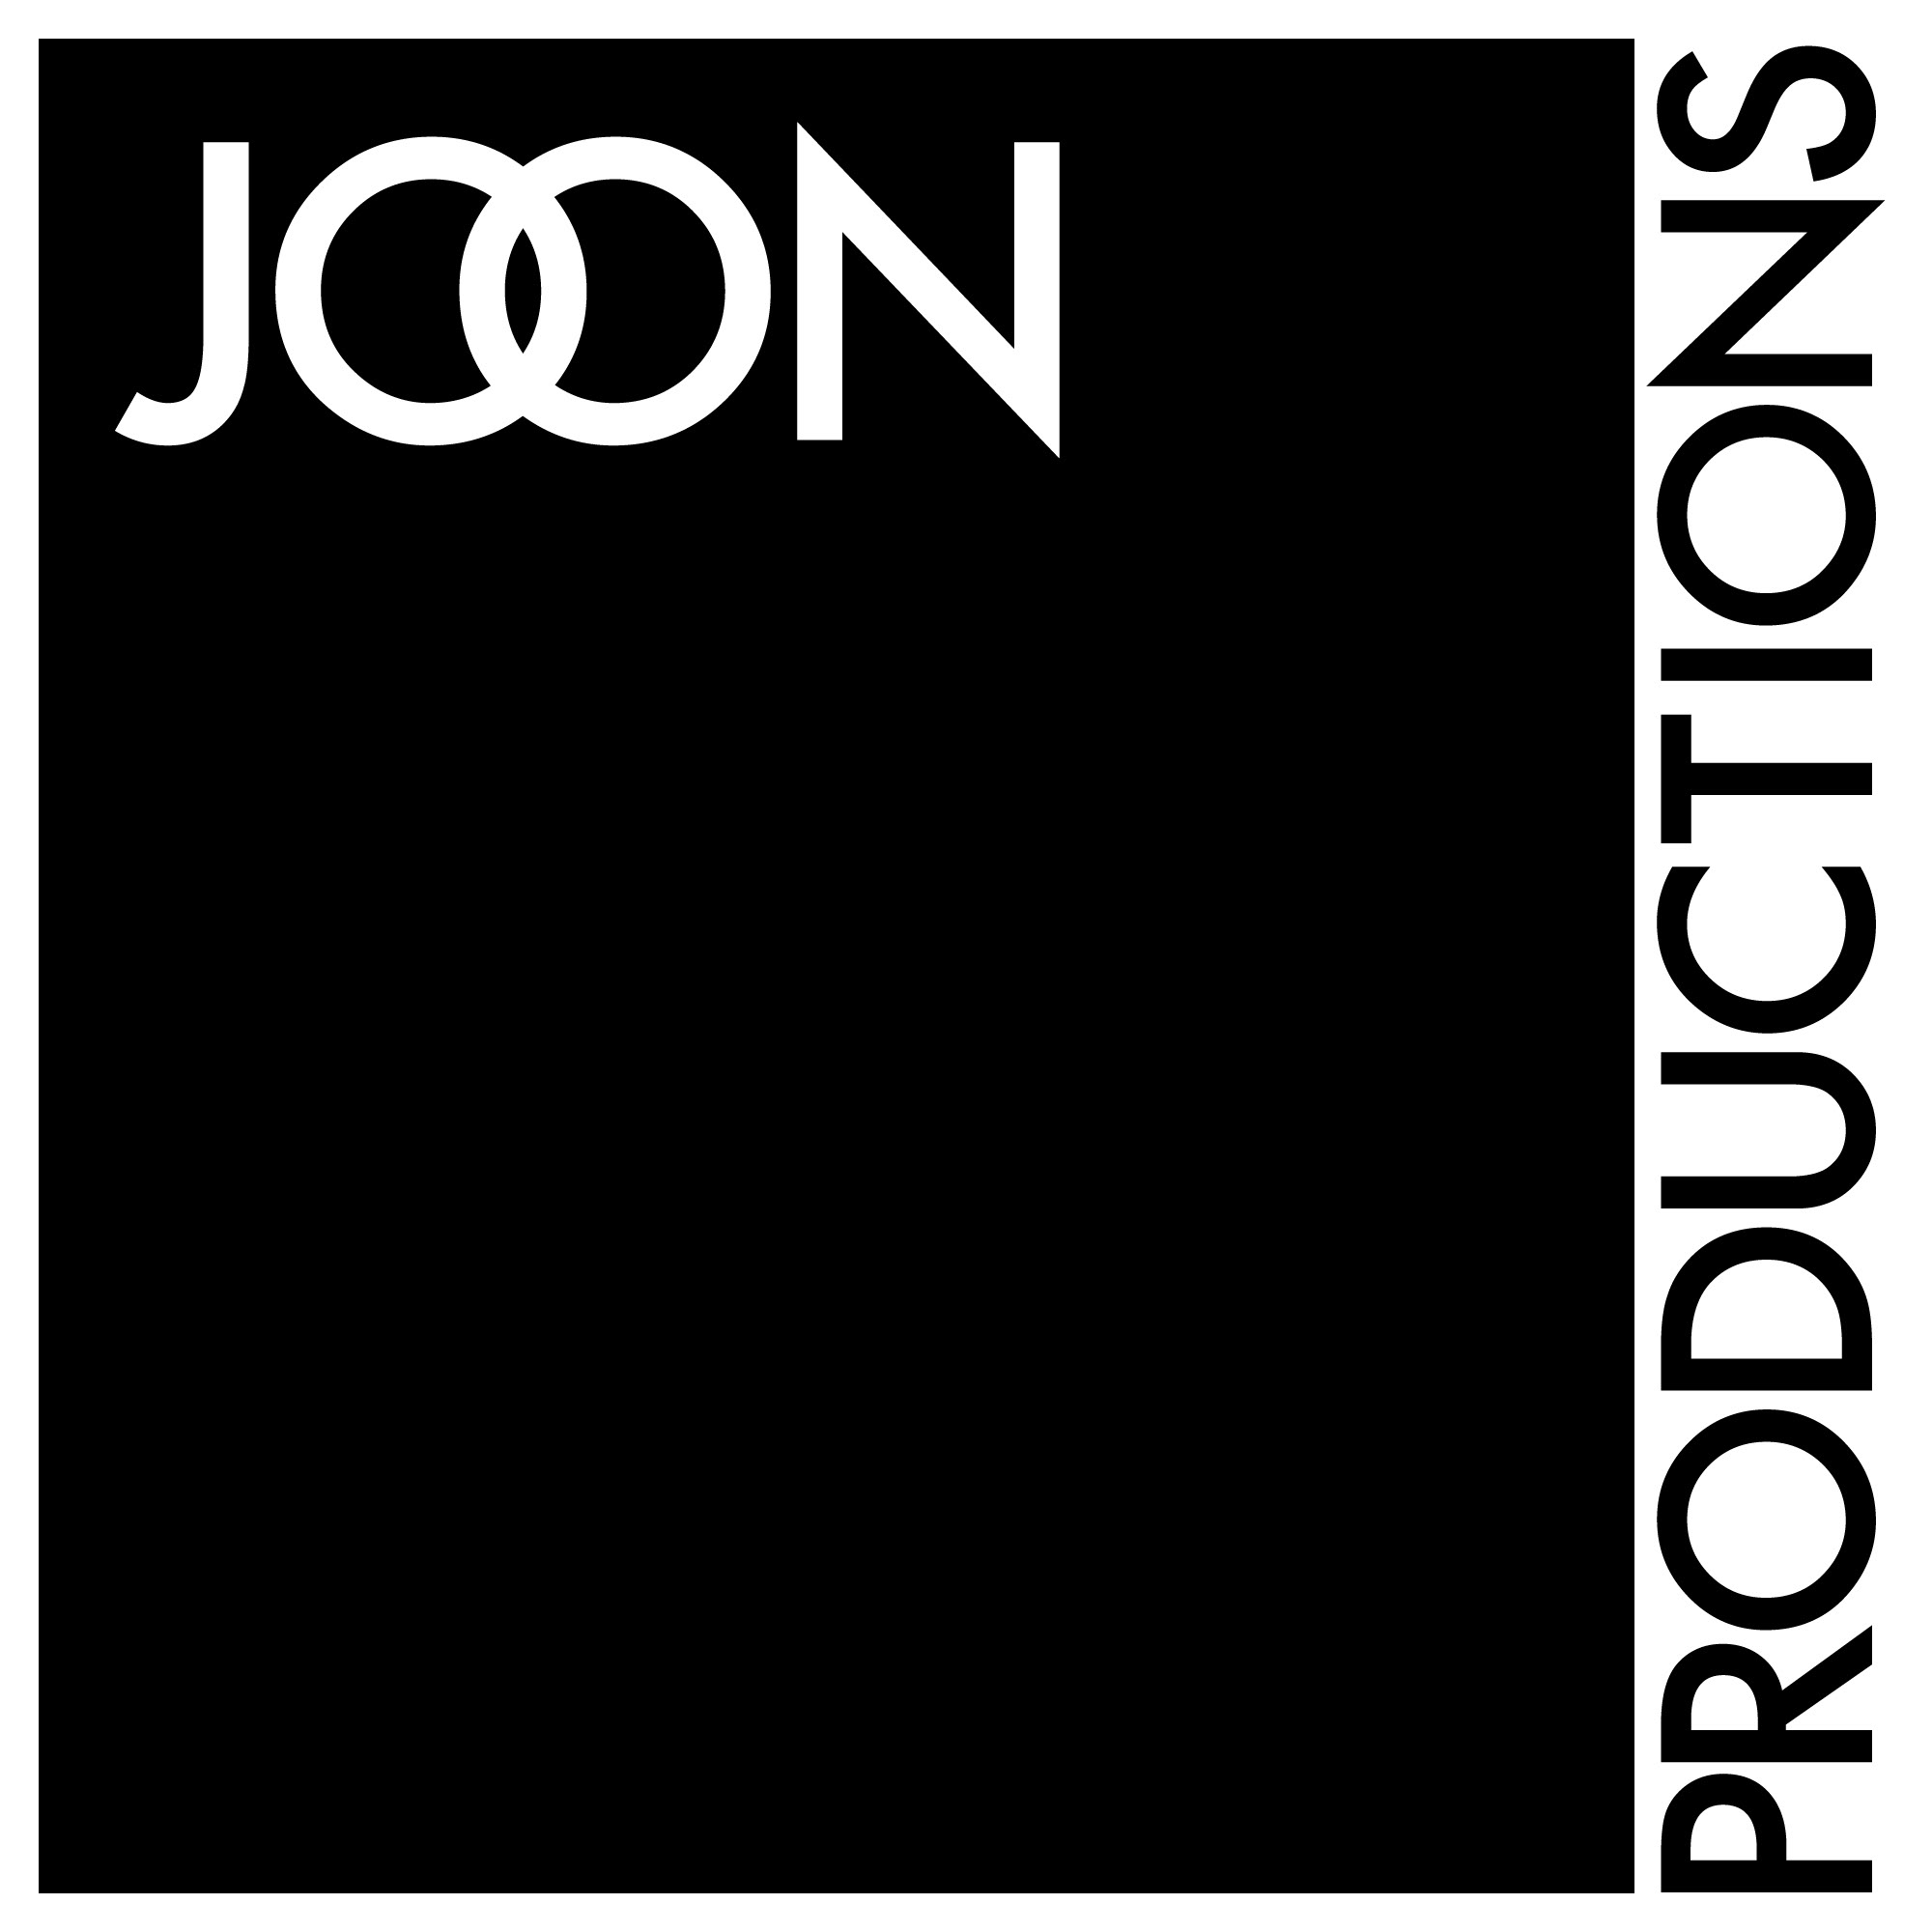 JOON Productions